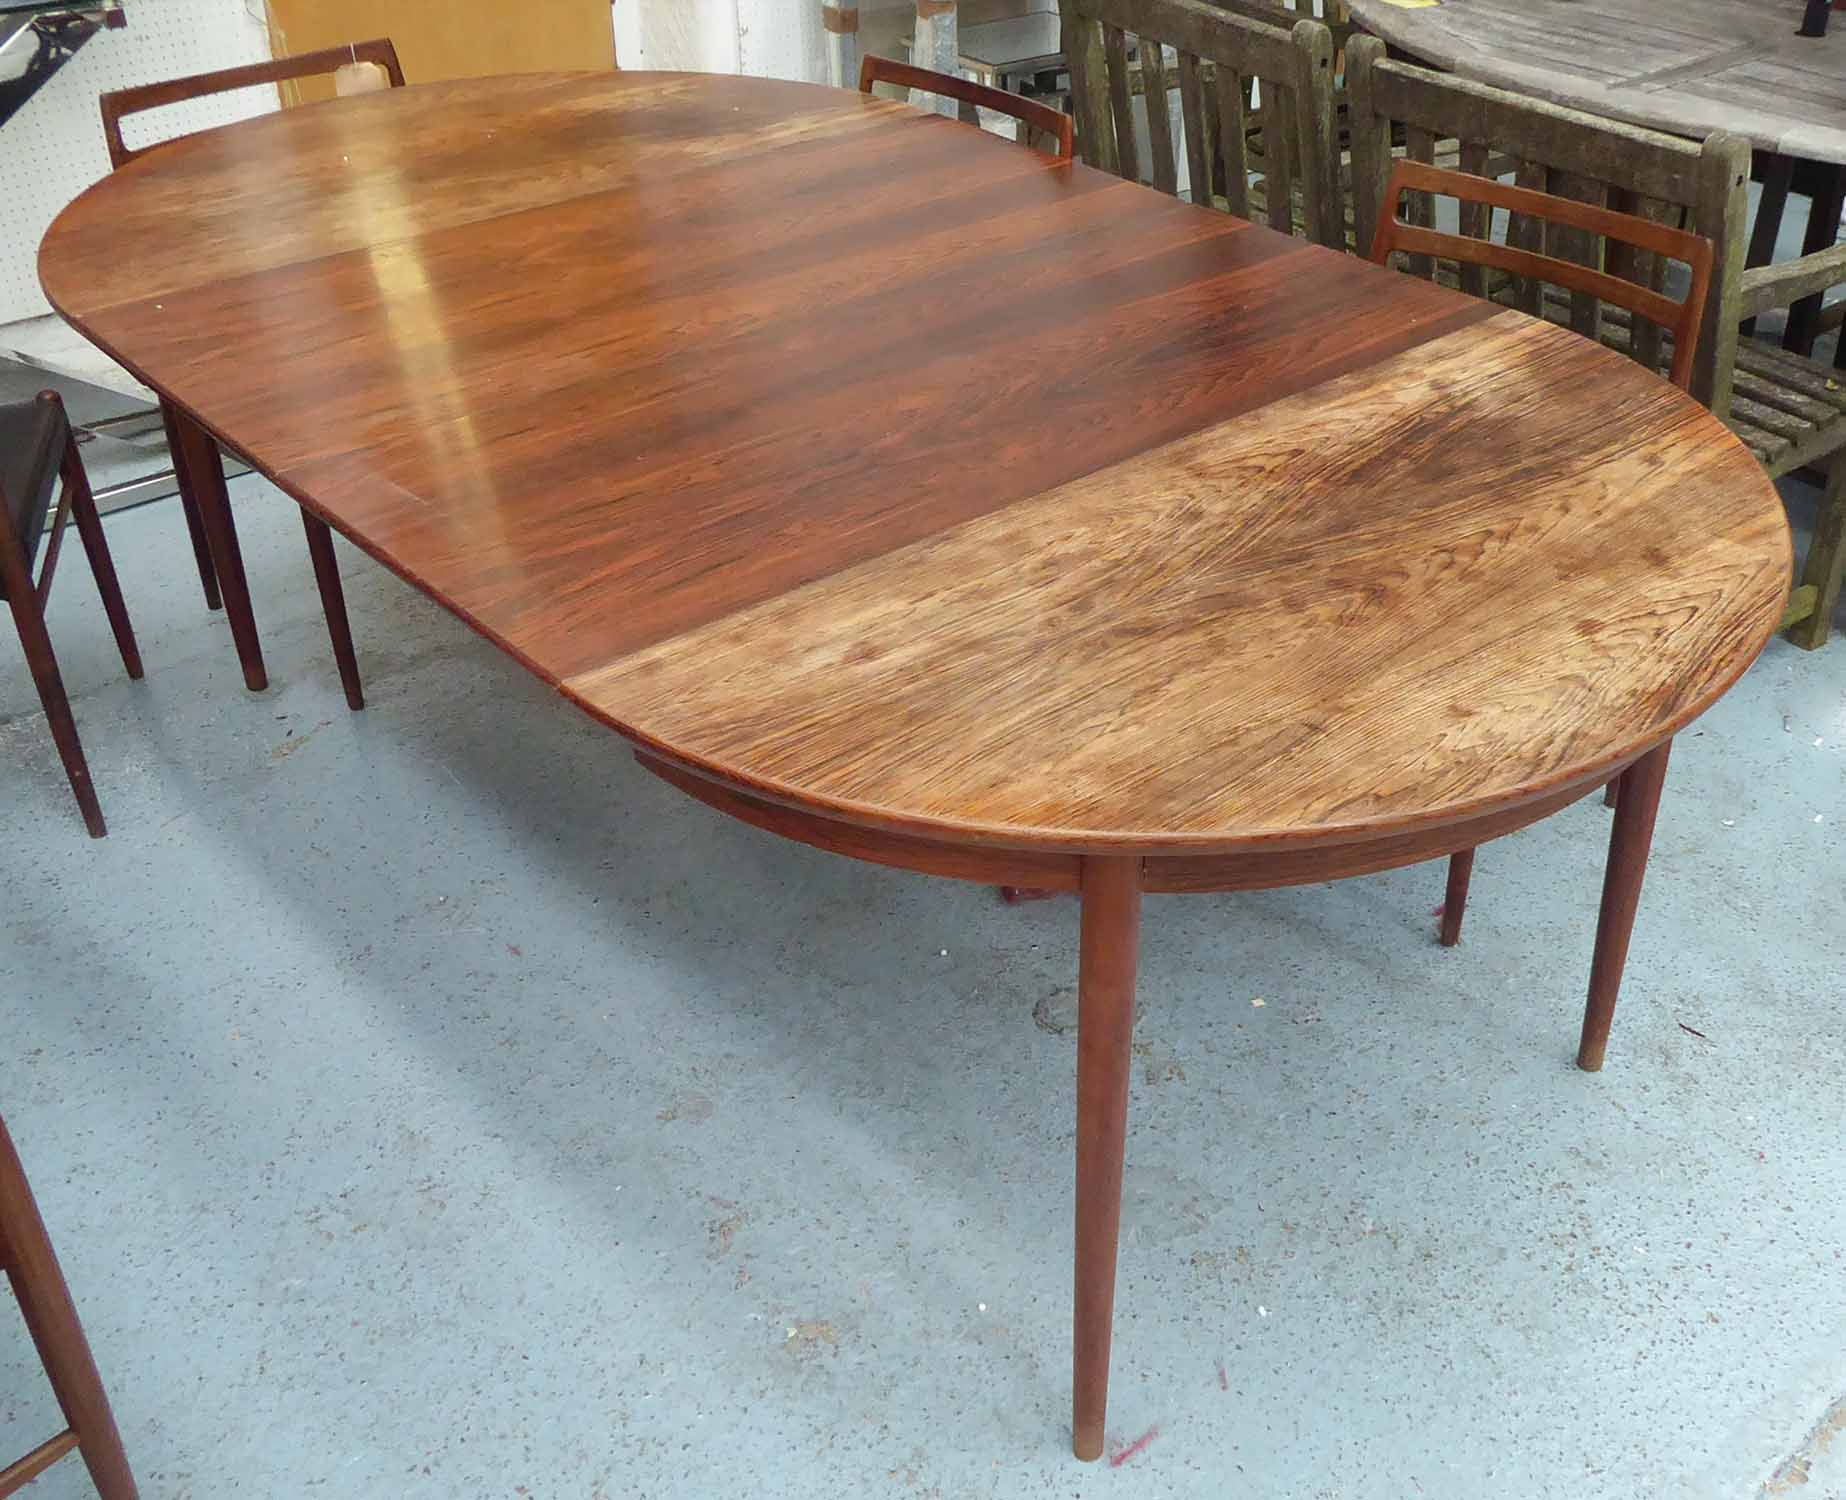 Lot 37 - GUSTAV BAHUS STYLE DINING TABLE, with two leaves, 210cm x 120cm x 74cm.